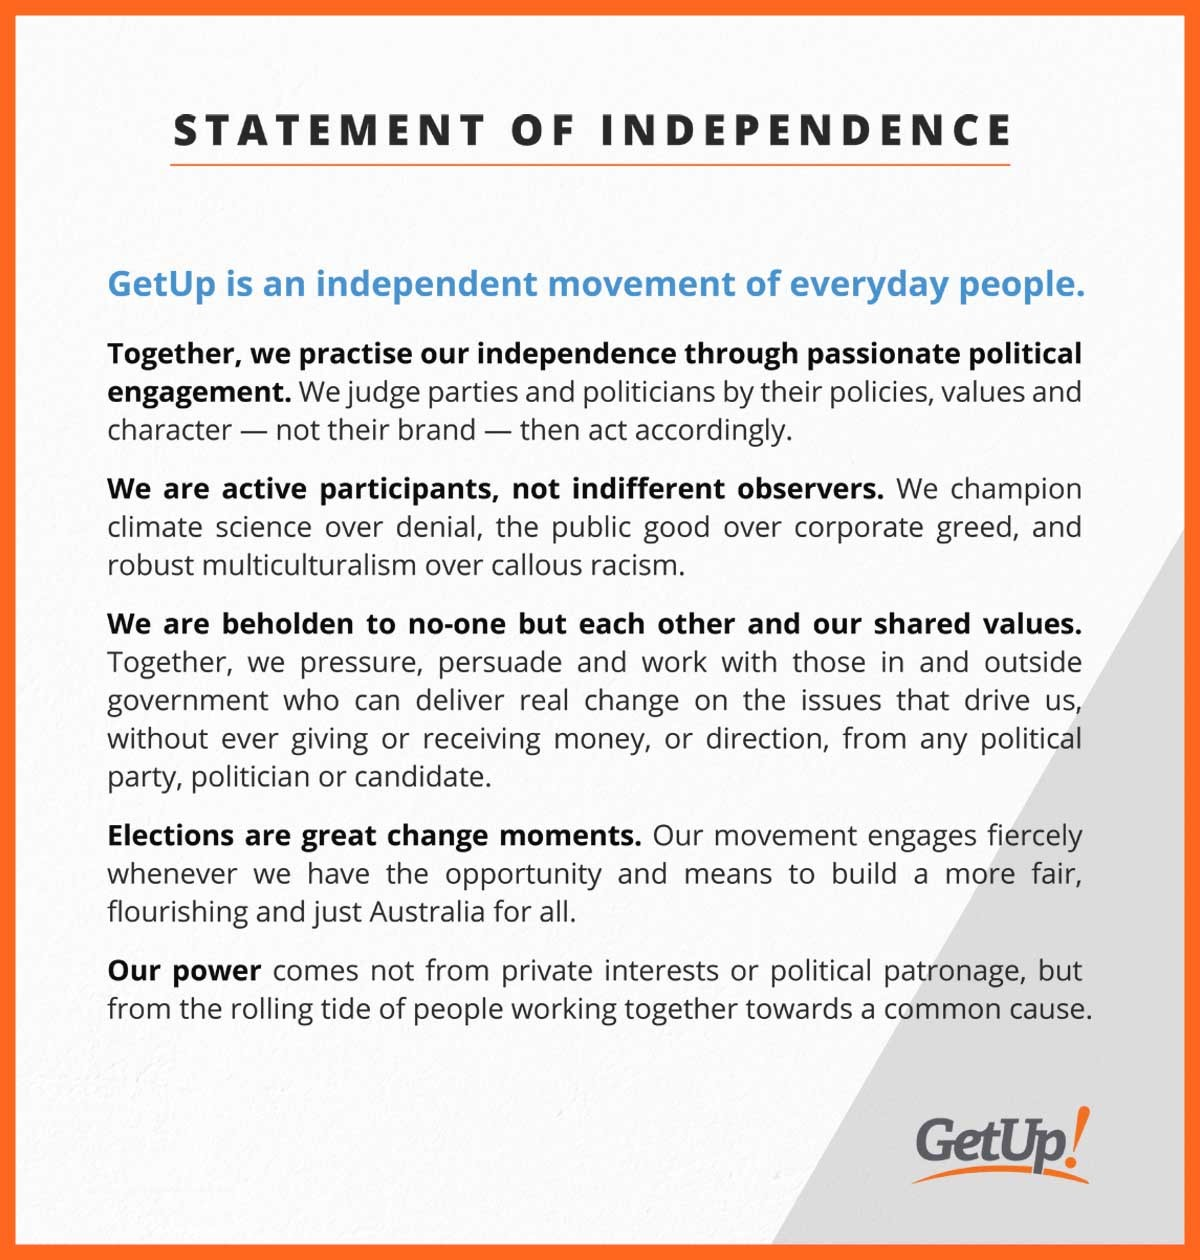 GetUp Statement of Independence